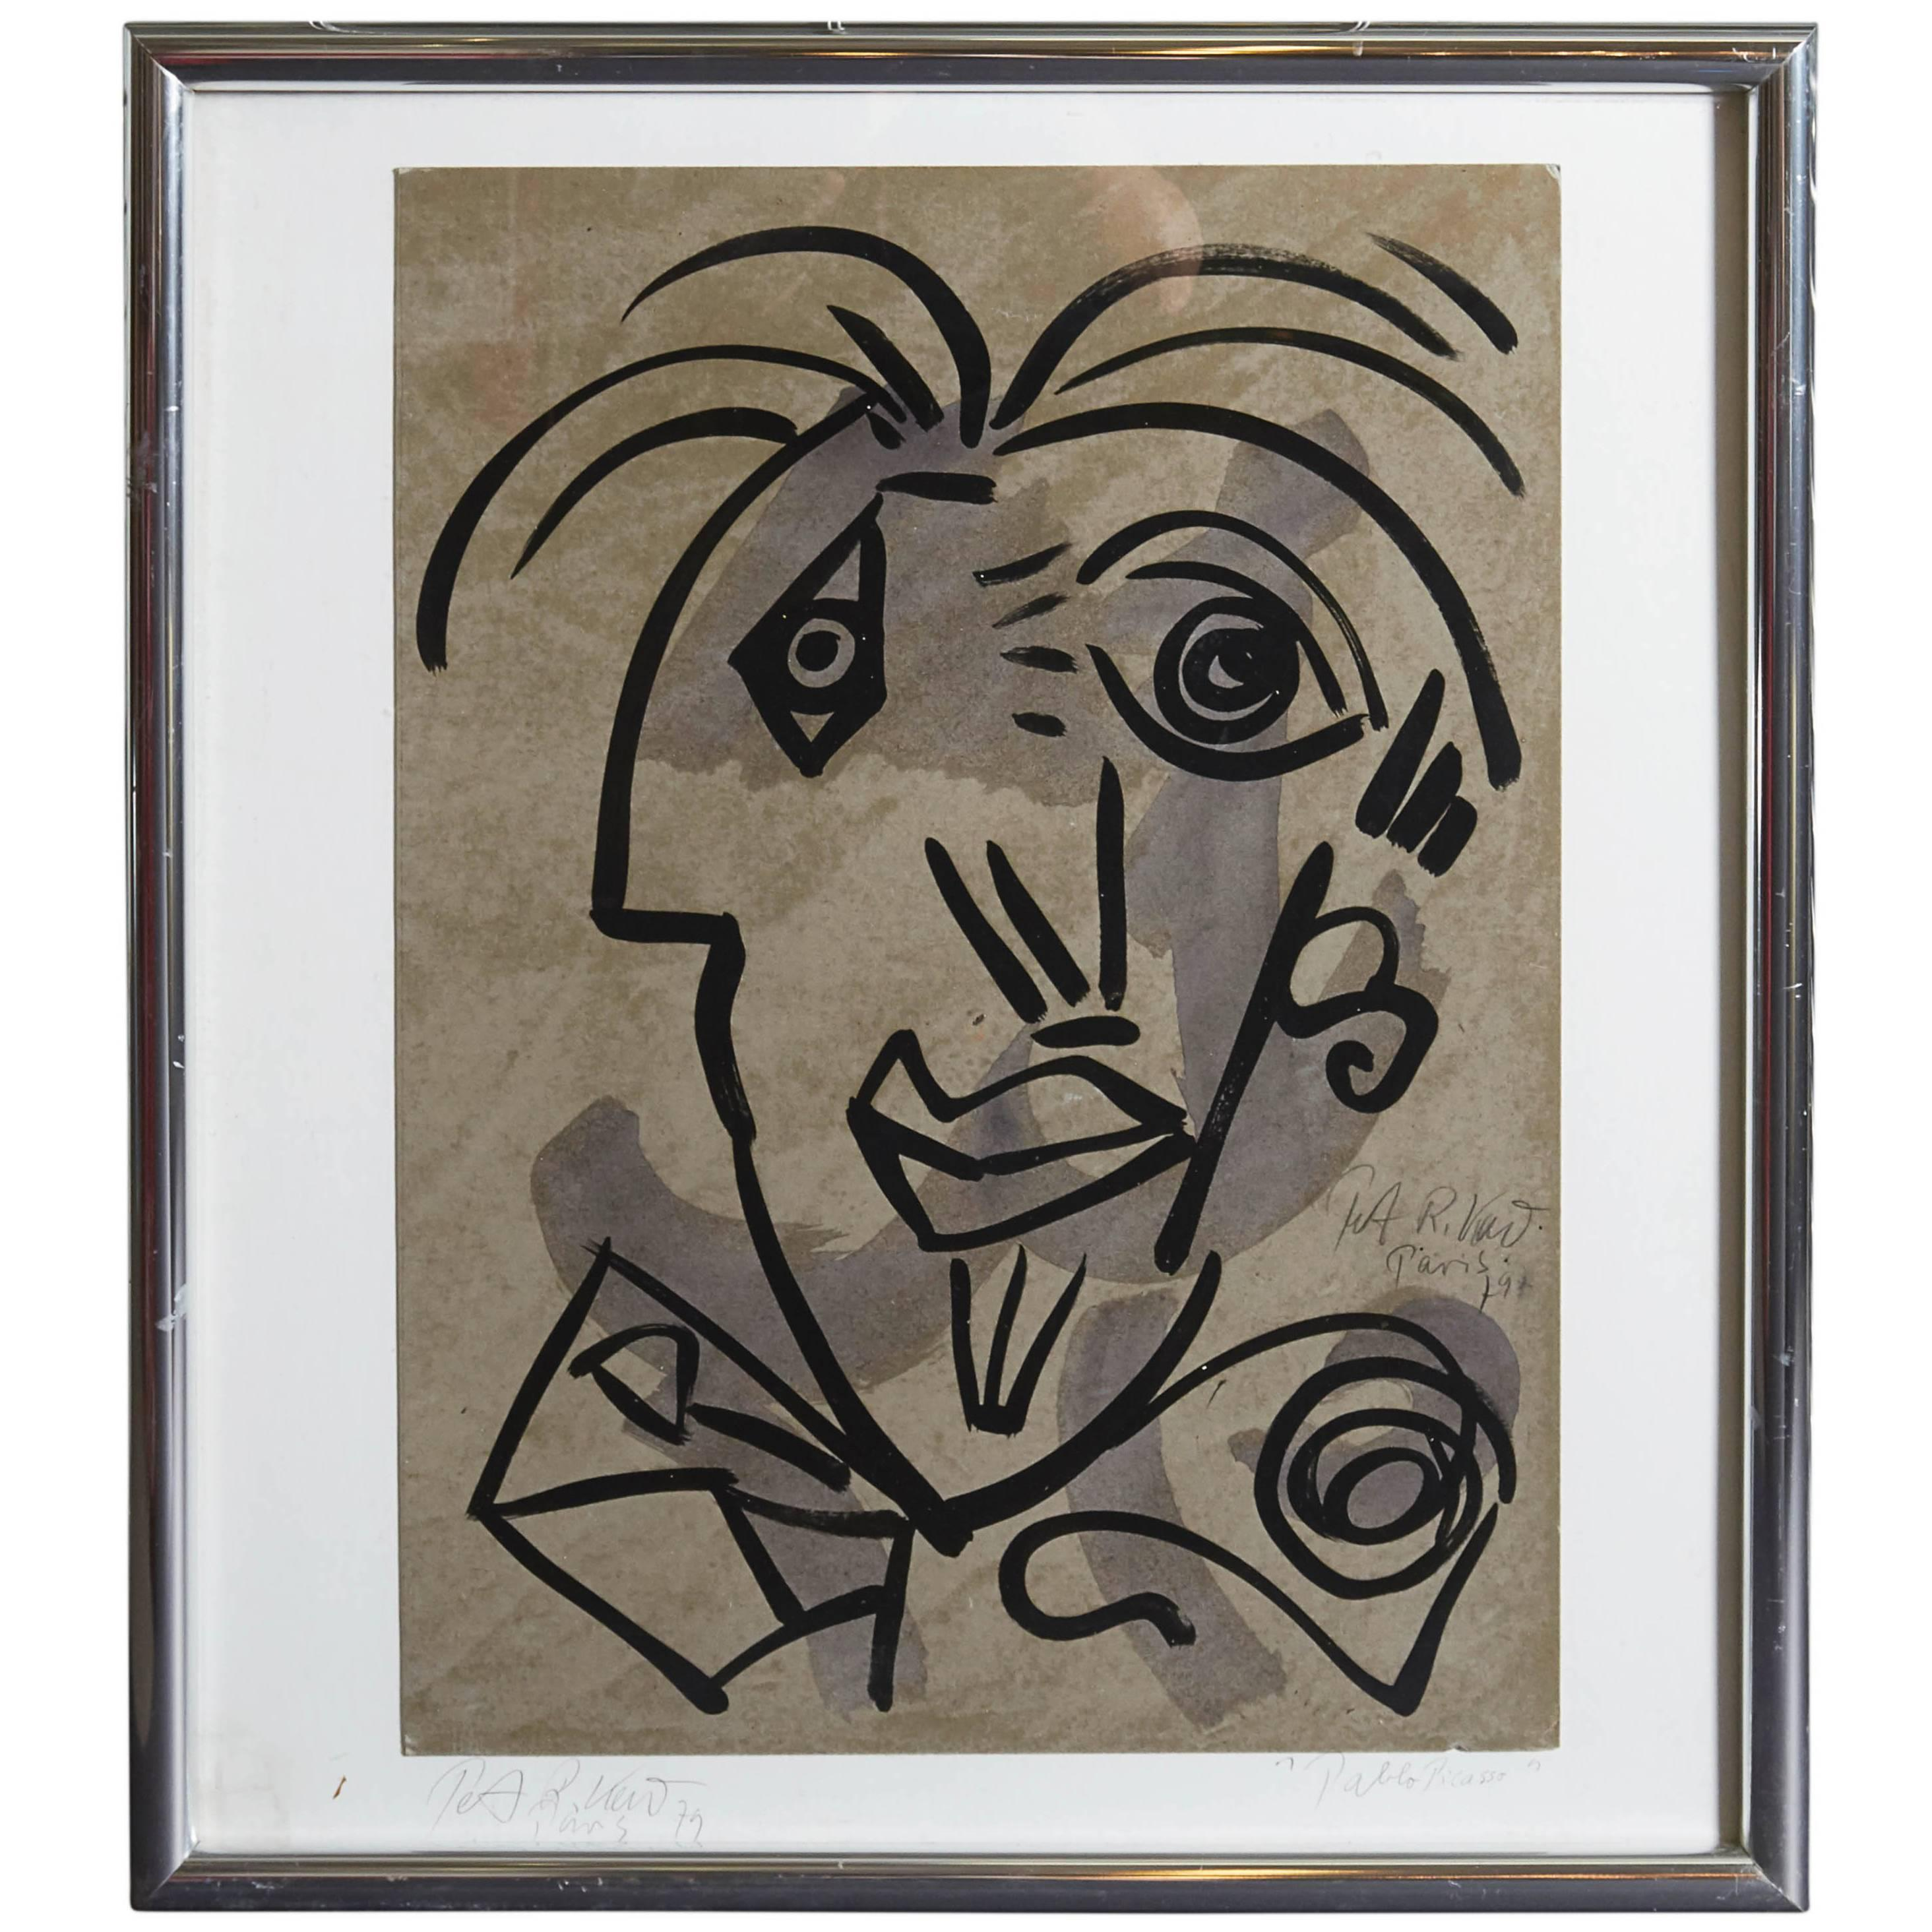 Peter Robert Keil, 'Pablo Picasso', Paint on Board, Signed